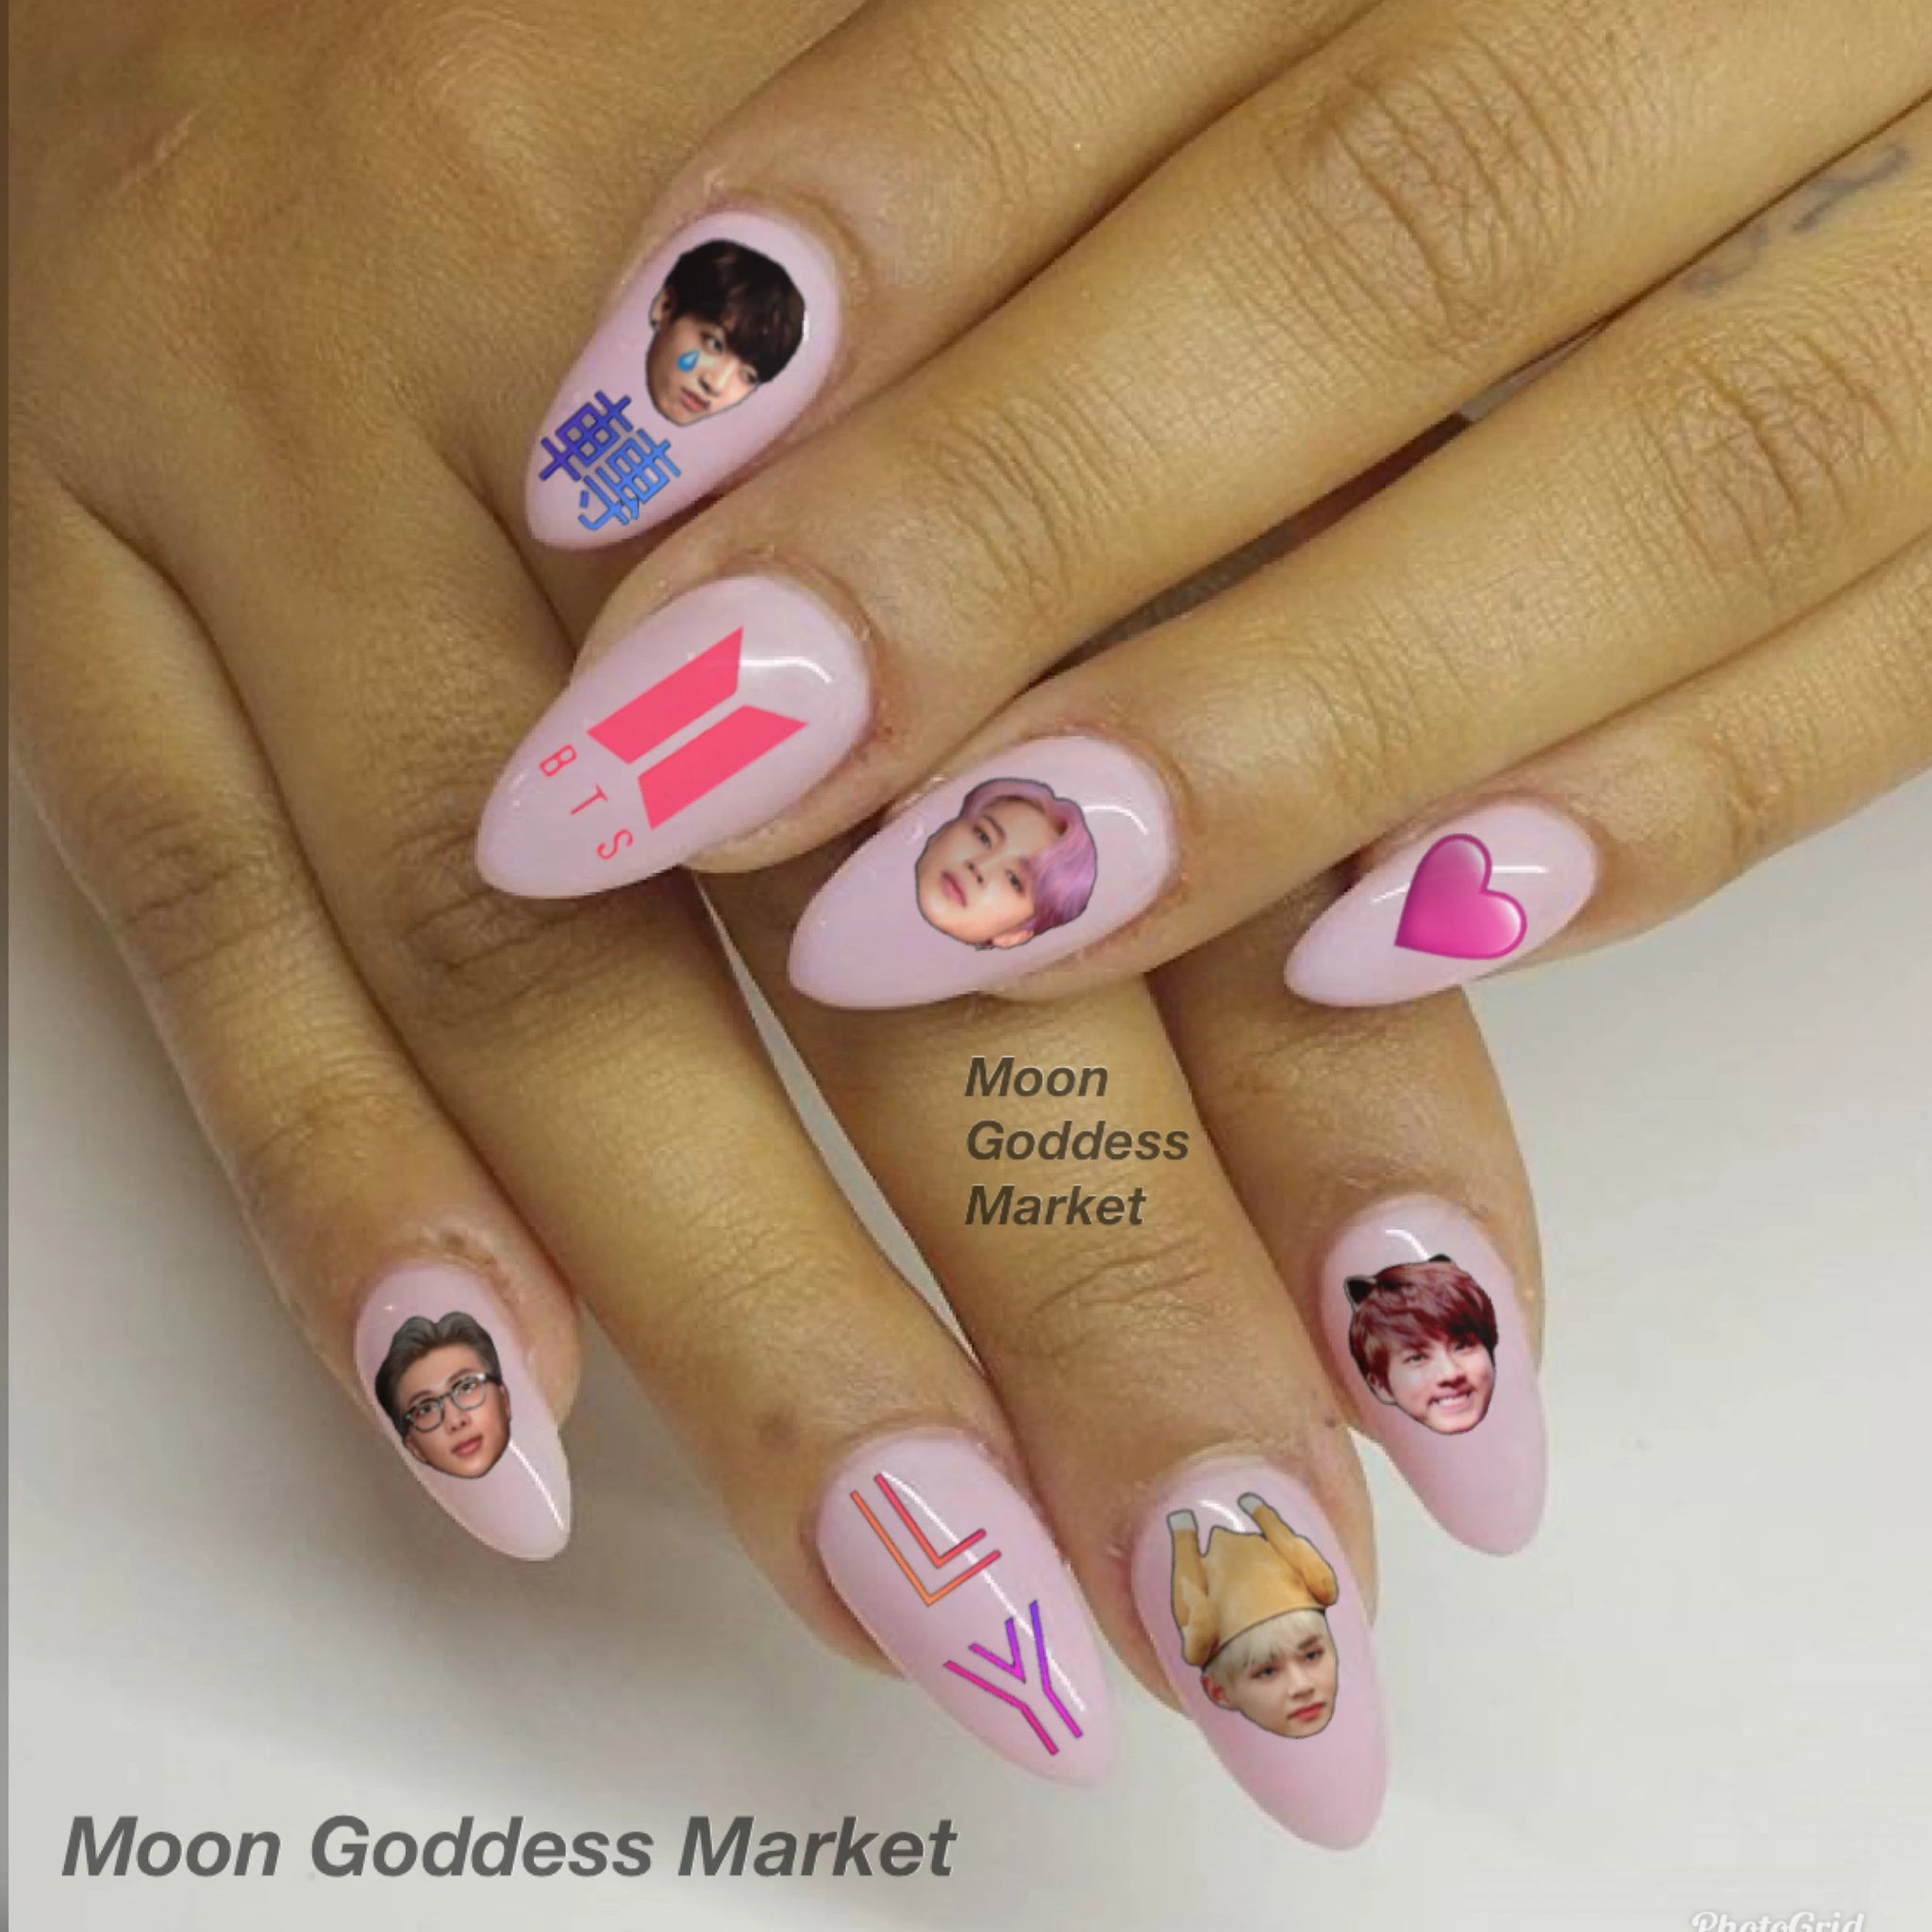 BTS Bangtan Sonyeondan 방탄소년단 Nail Decals Waterslide Decals - Moon Goddess Market